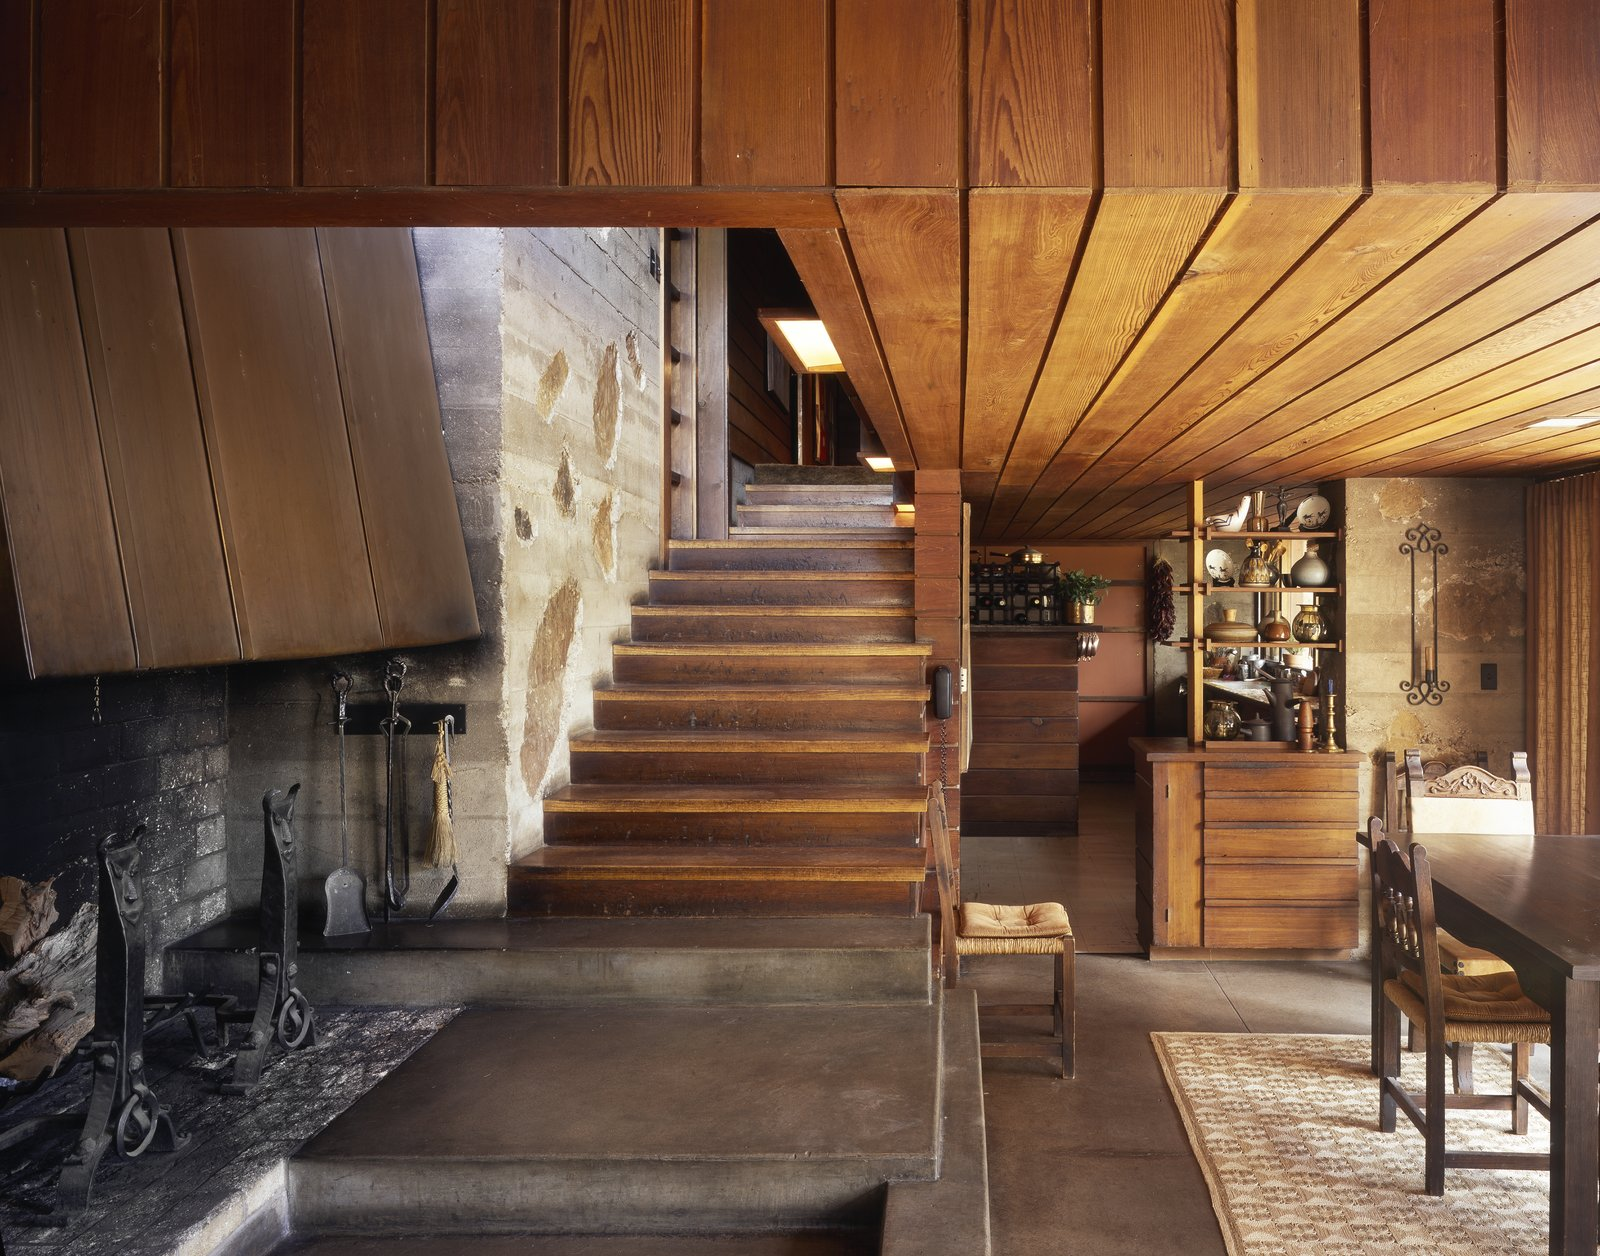 The Wood-Peterson house in Colorado Springs was built in 1950 by Ingraham and Ingraham, Architects, who used flat fieldstone set in poured concrete through much of the home. You'll notice they kept the stairwell clean by eliminating a railing and included built-in cabinets that appear in many of their homes.  Photo 3 of 5 in An Architect in Her Own Wright